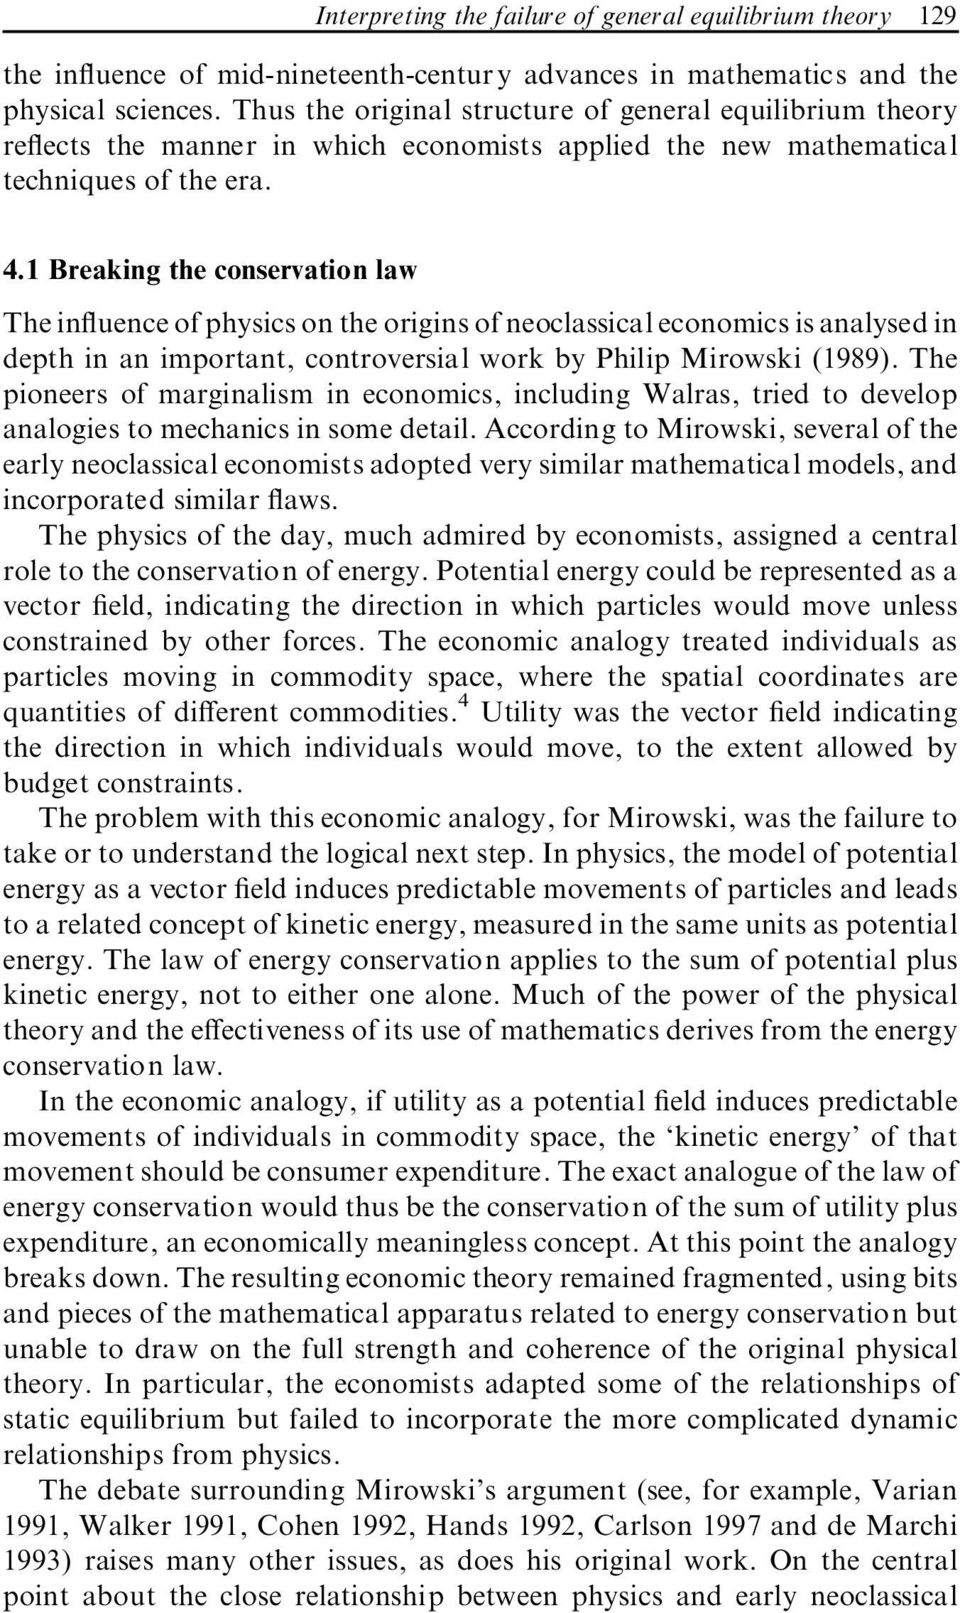 1 Breaking the conservation law The in uence of physics on the origins of neoclassical economics is analysed in depth in an important, controversial work by Philip Mirowski (1989).